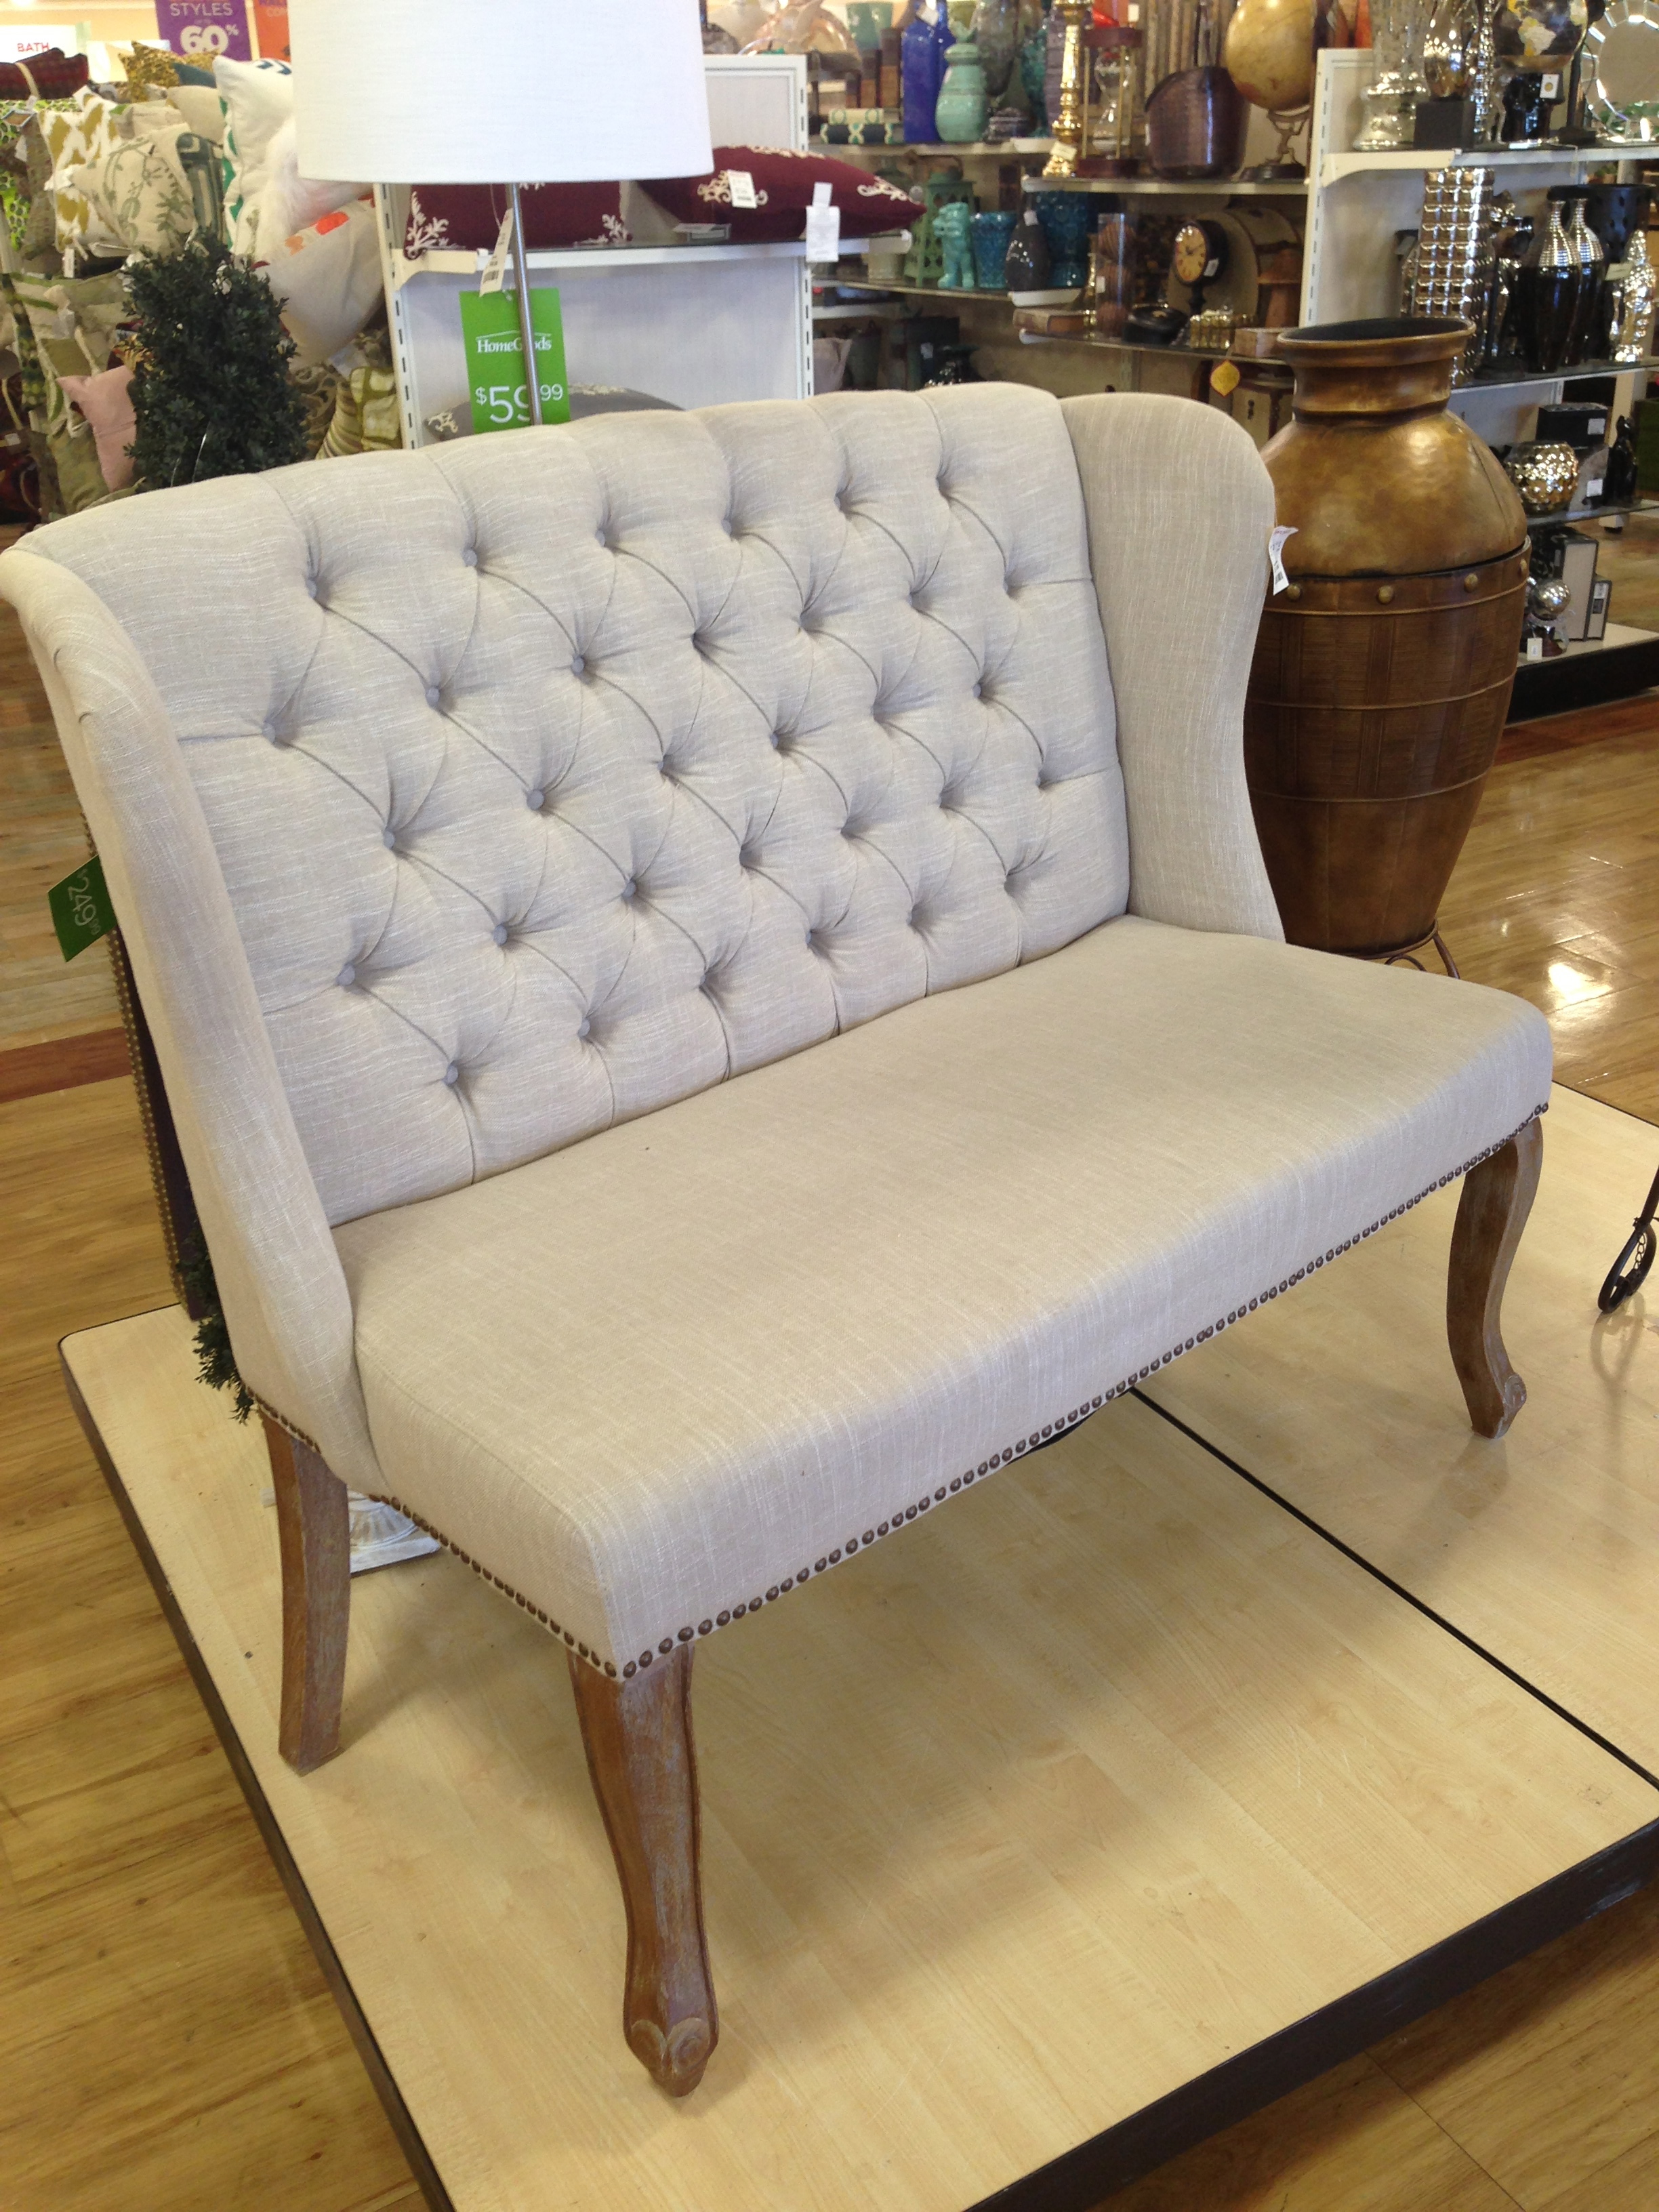 Home Goods Chair HG54  Roccommunity